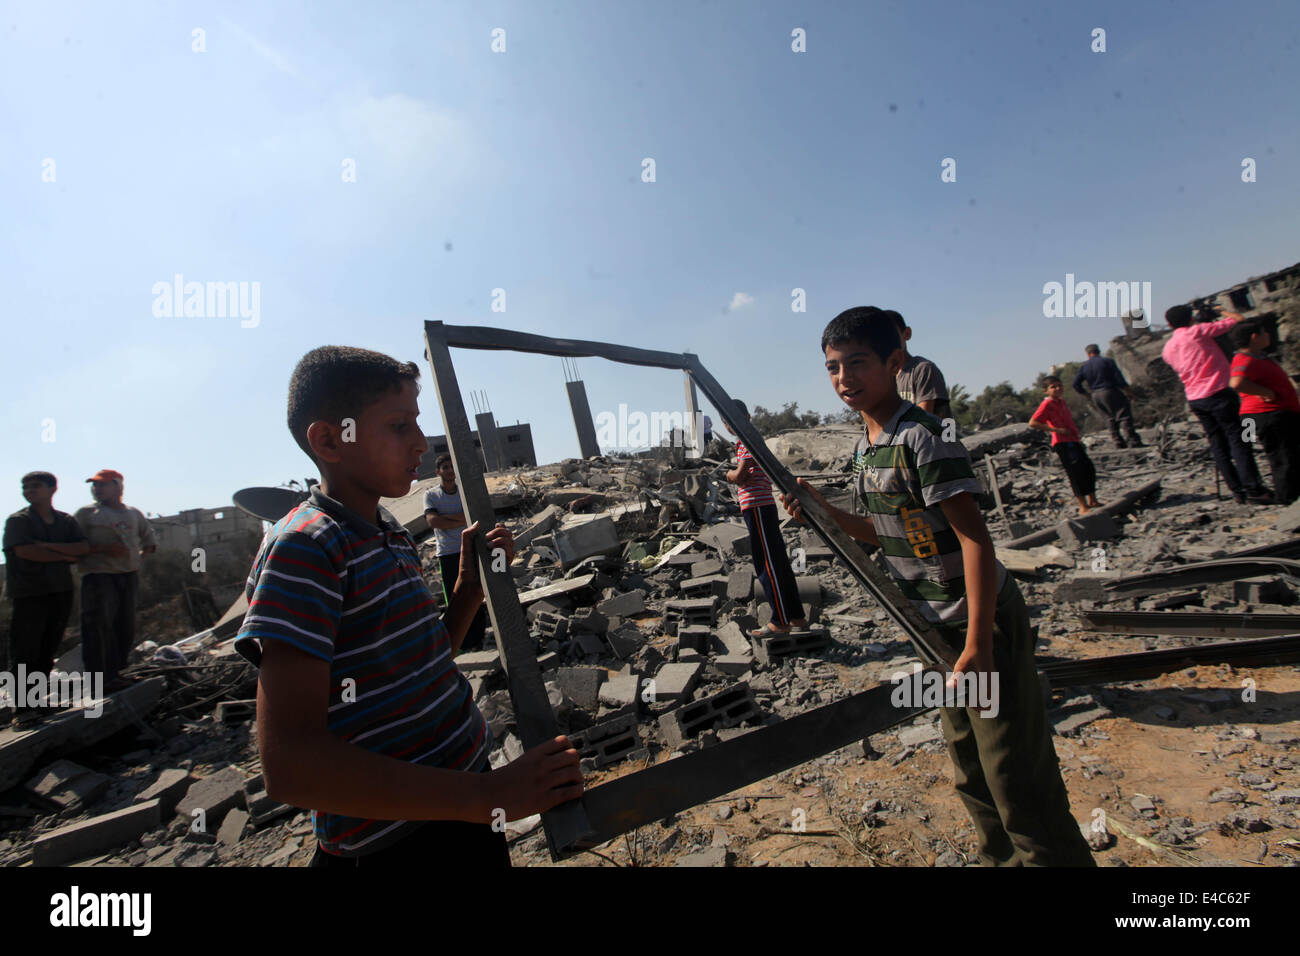 July 8, 2014 - Gaza, Palestinian Territories - Palestinians inspect their home, police said in an Israeli air raid - Stock Image